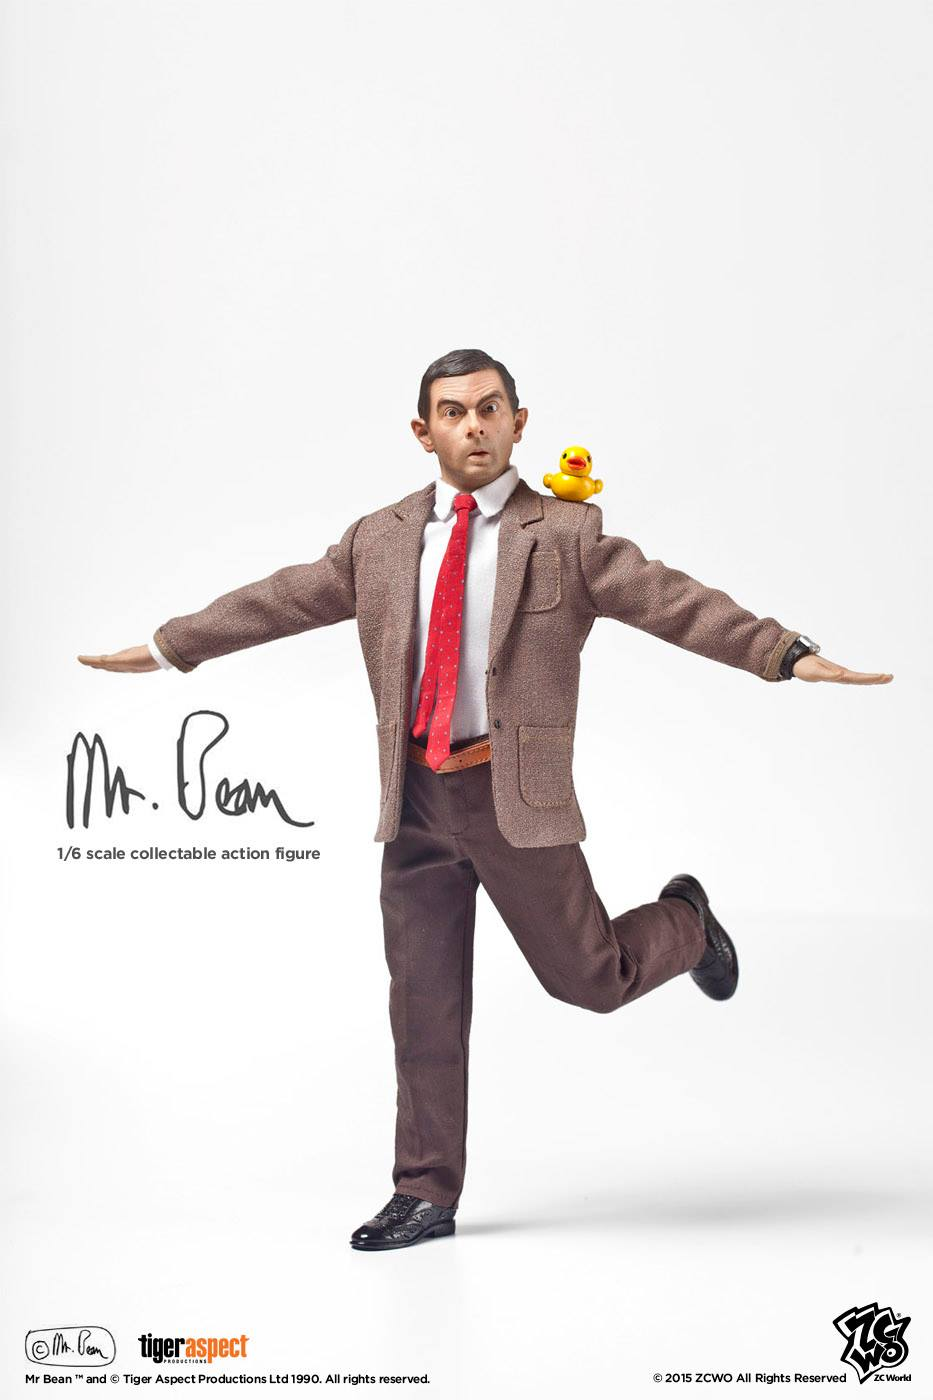 [ZCWO] Mr. Bean - 1/6 scale 150244y4dyjj4d4k4364jz